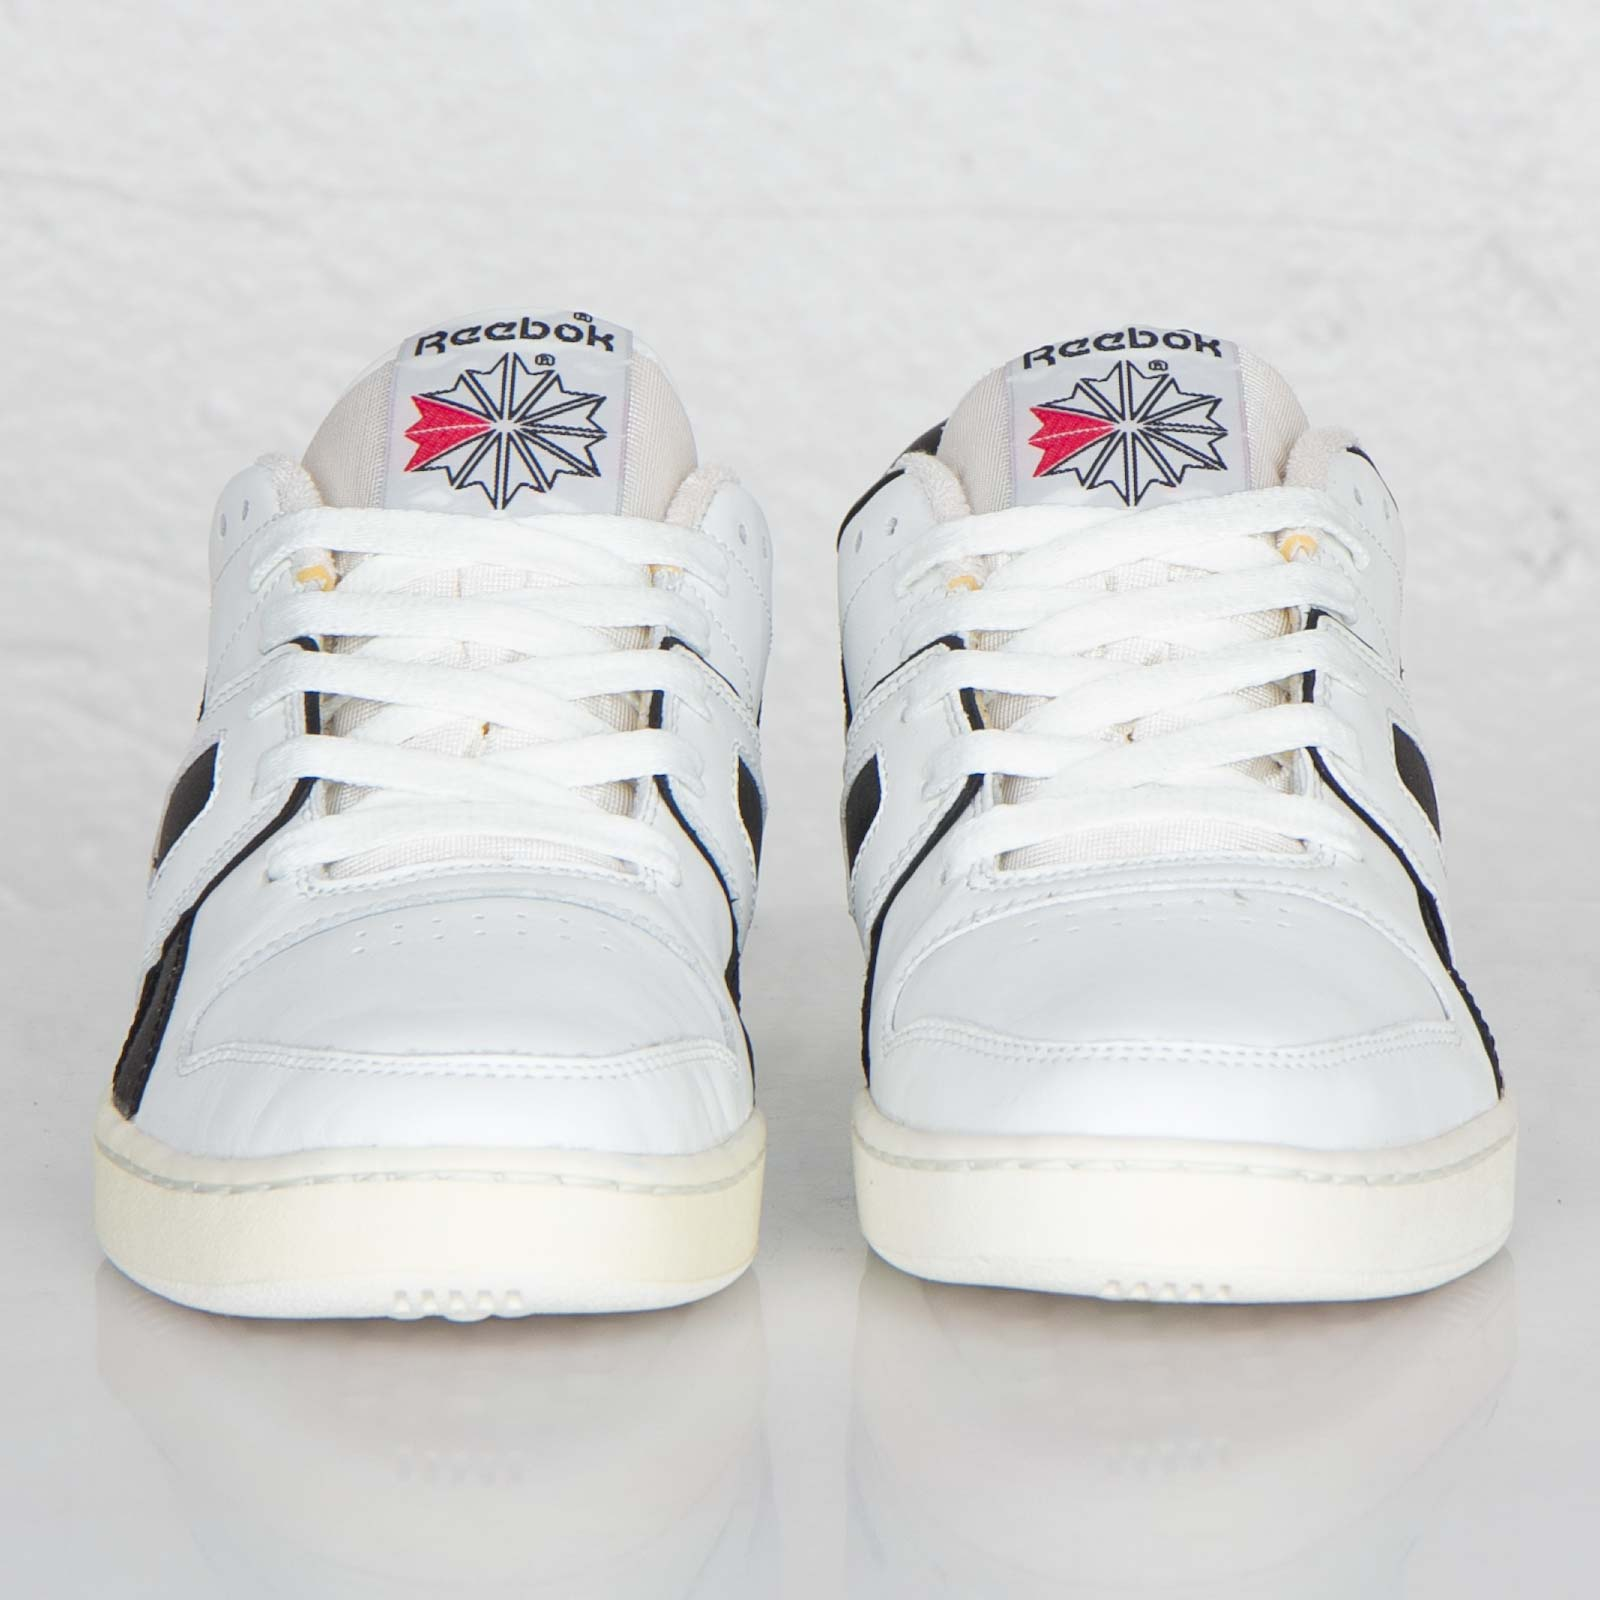 Reebok Pro Workout Low - V52536 - Sneakersnstuff  26c8702d6